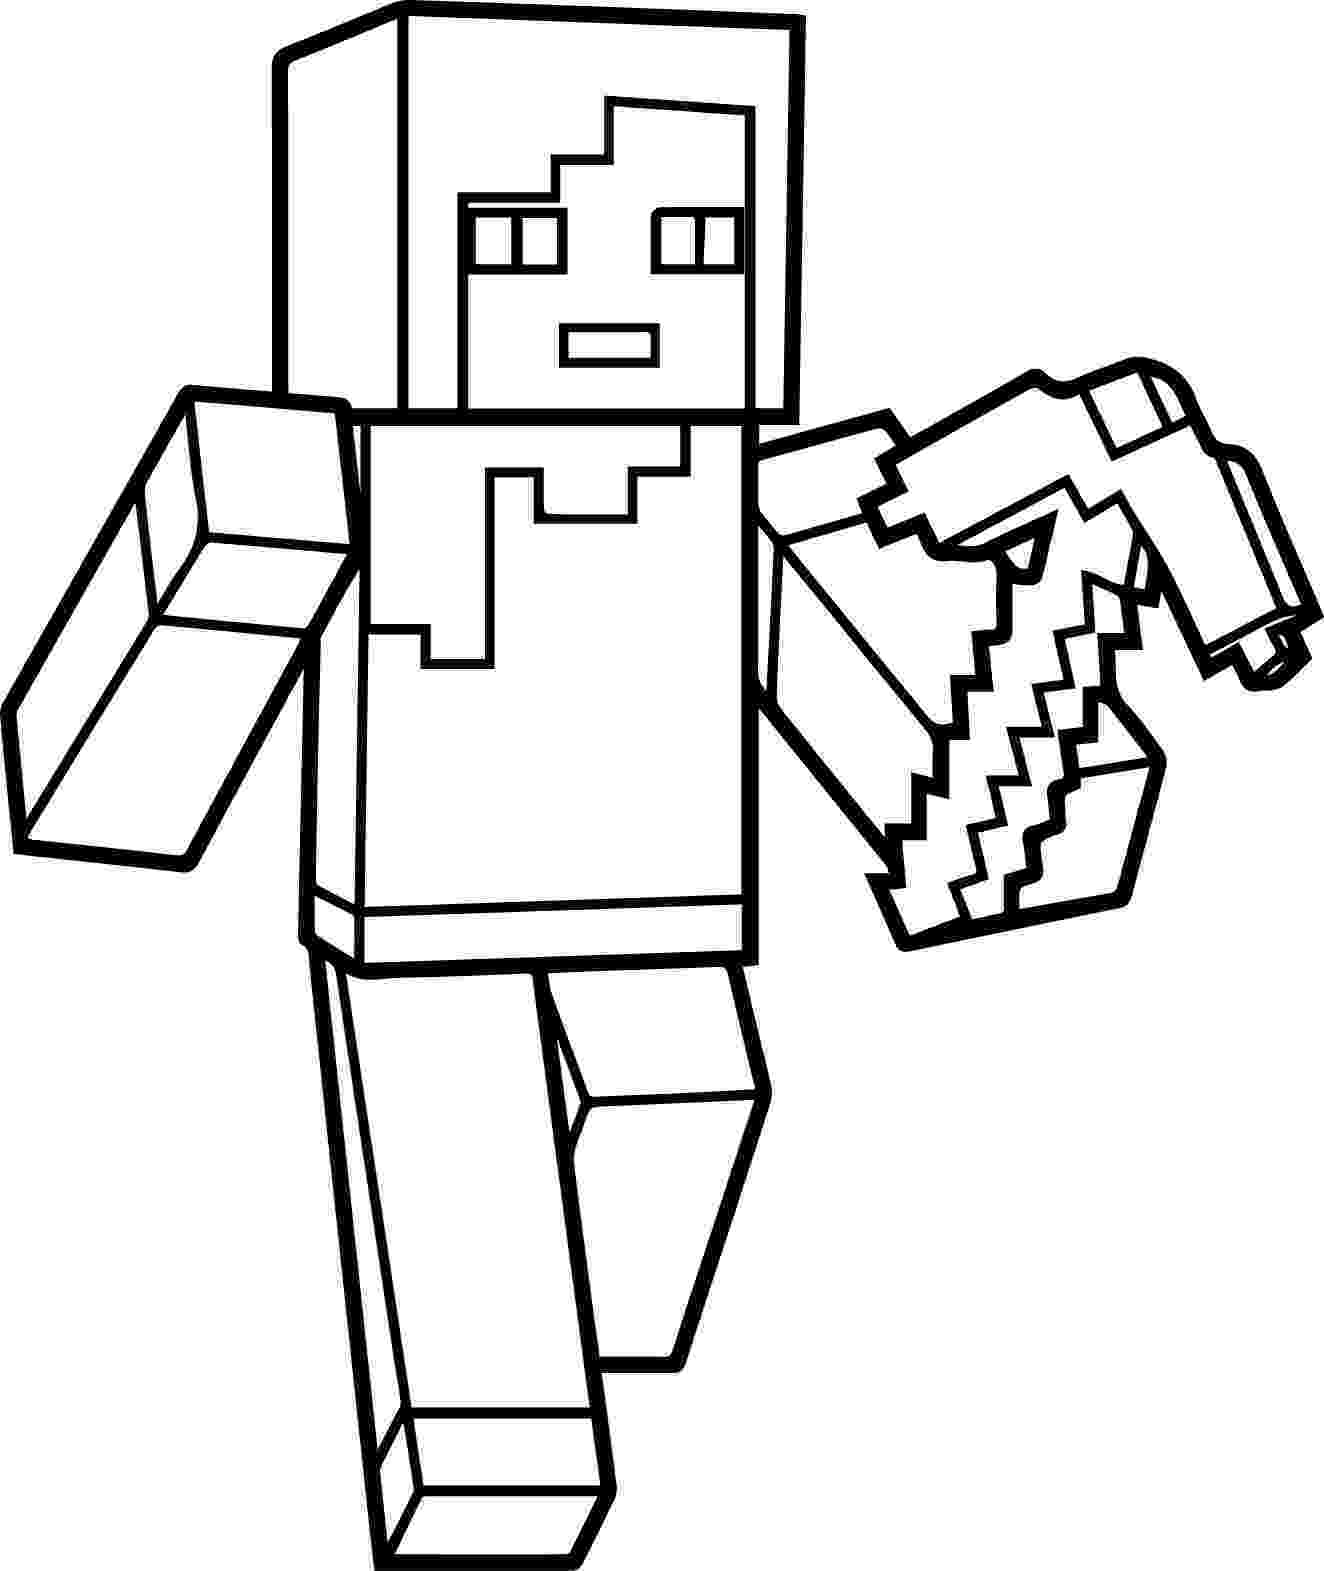 mincraft coloring pages minecraft coloring pages best coloring pages for kids mincraft coloring pages